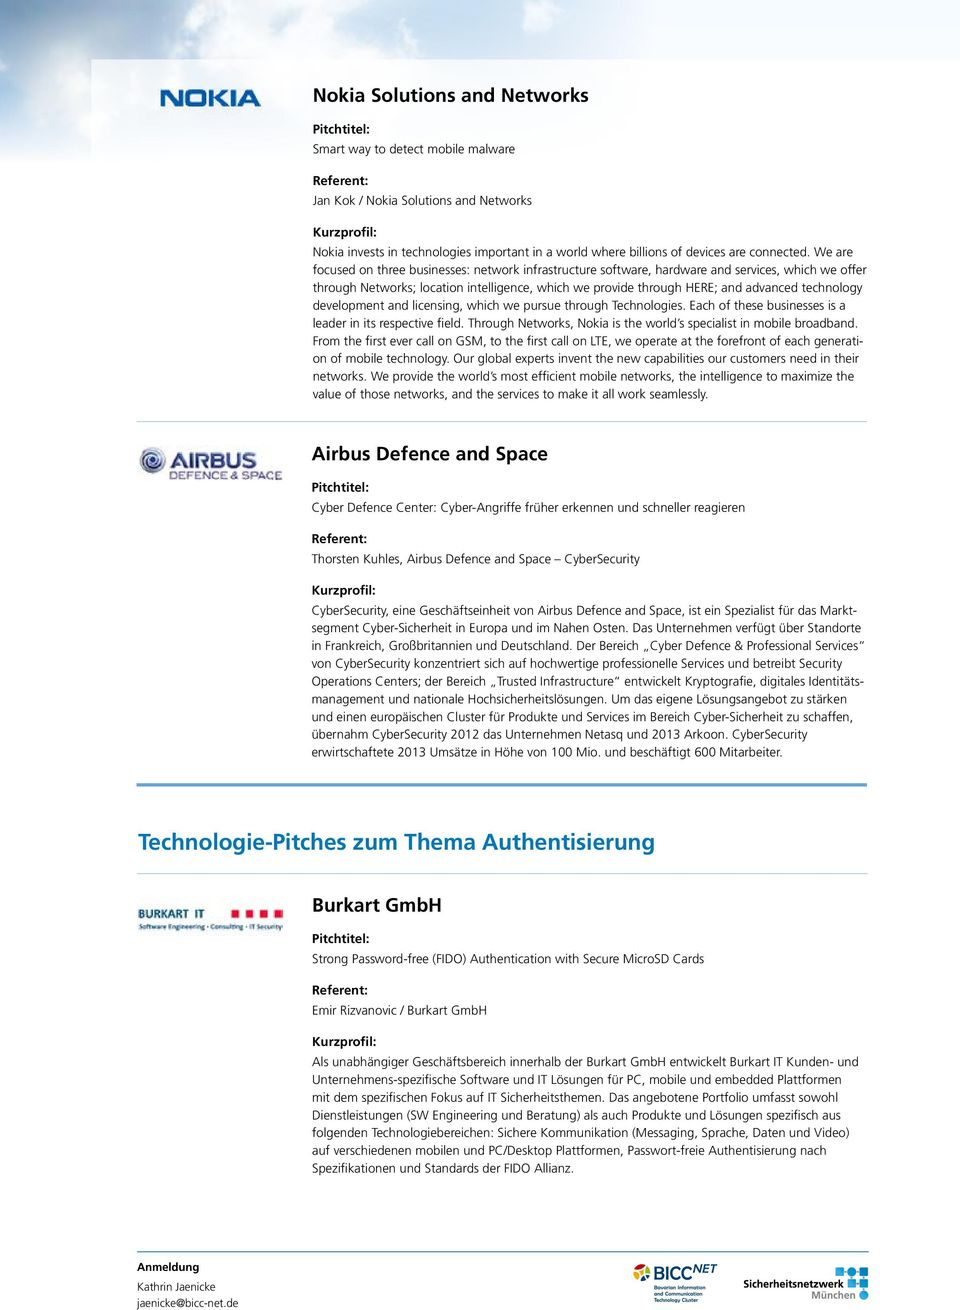 technology development and licensing, which we pursue through Technologies. Each of these businesses is a leader in its respective field.